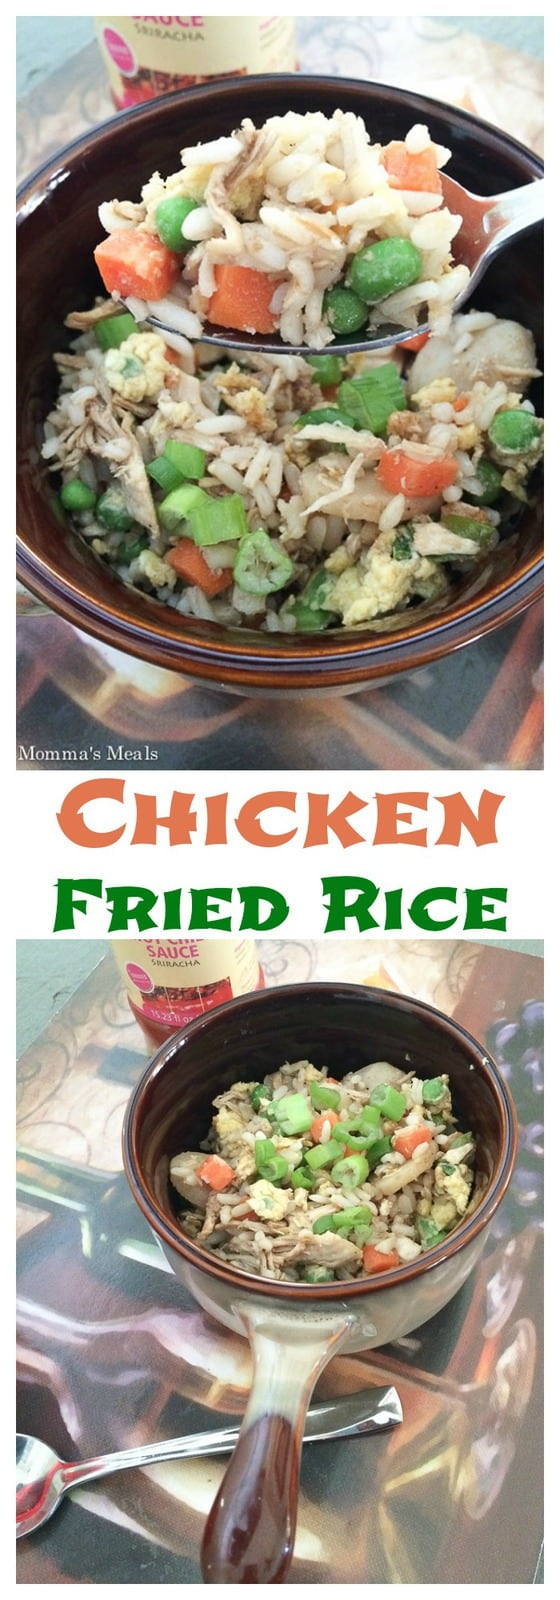 Chicken Fried Rice - it's easy, healthy and tasty to make your own takeout, and you can customize it based on what your family loves! | cupcakesandkalechips.com | gluten free recipe